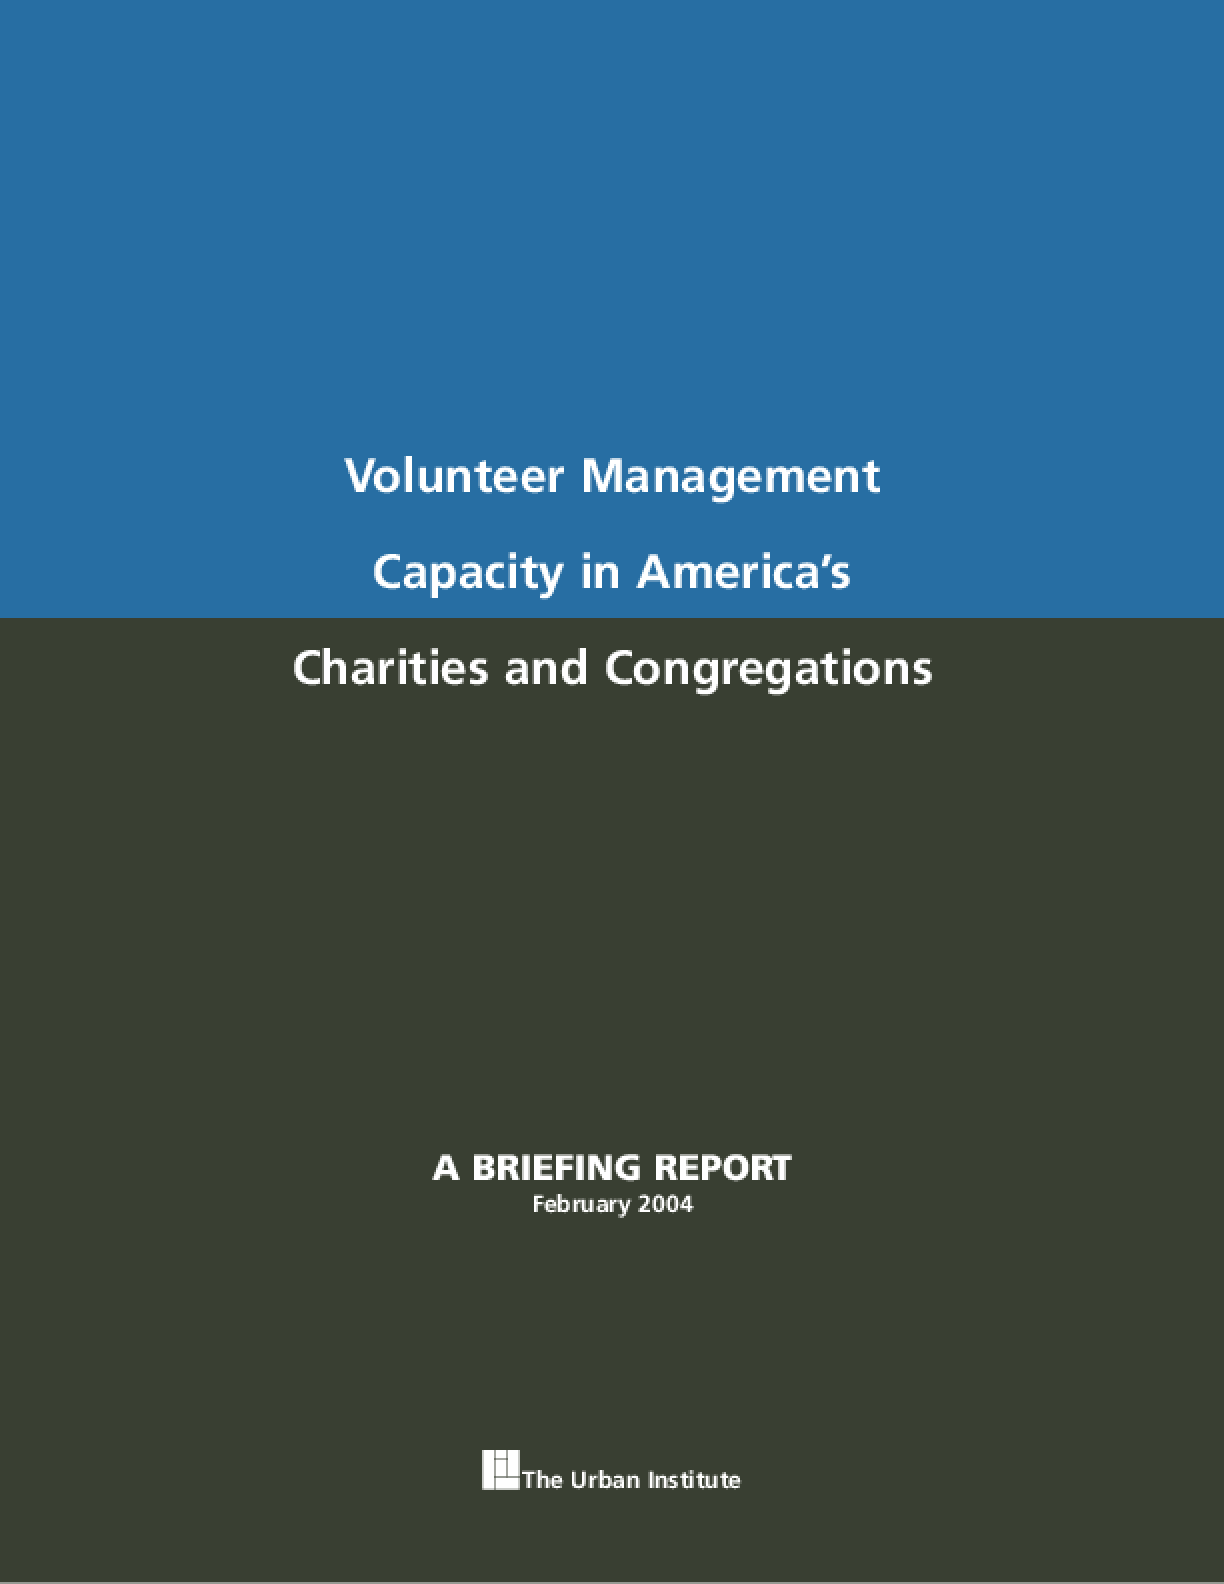 Volunteer Management Capacity in America's Charities and Congregations